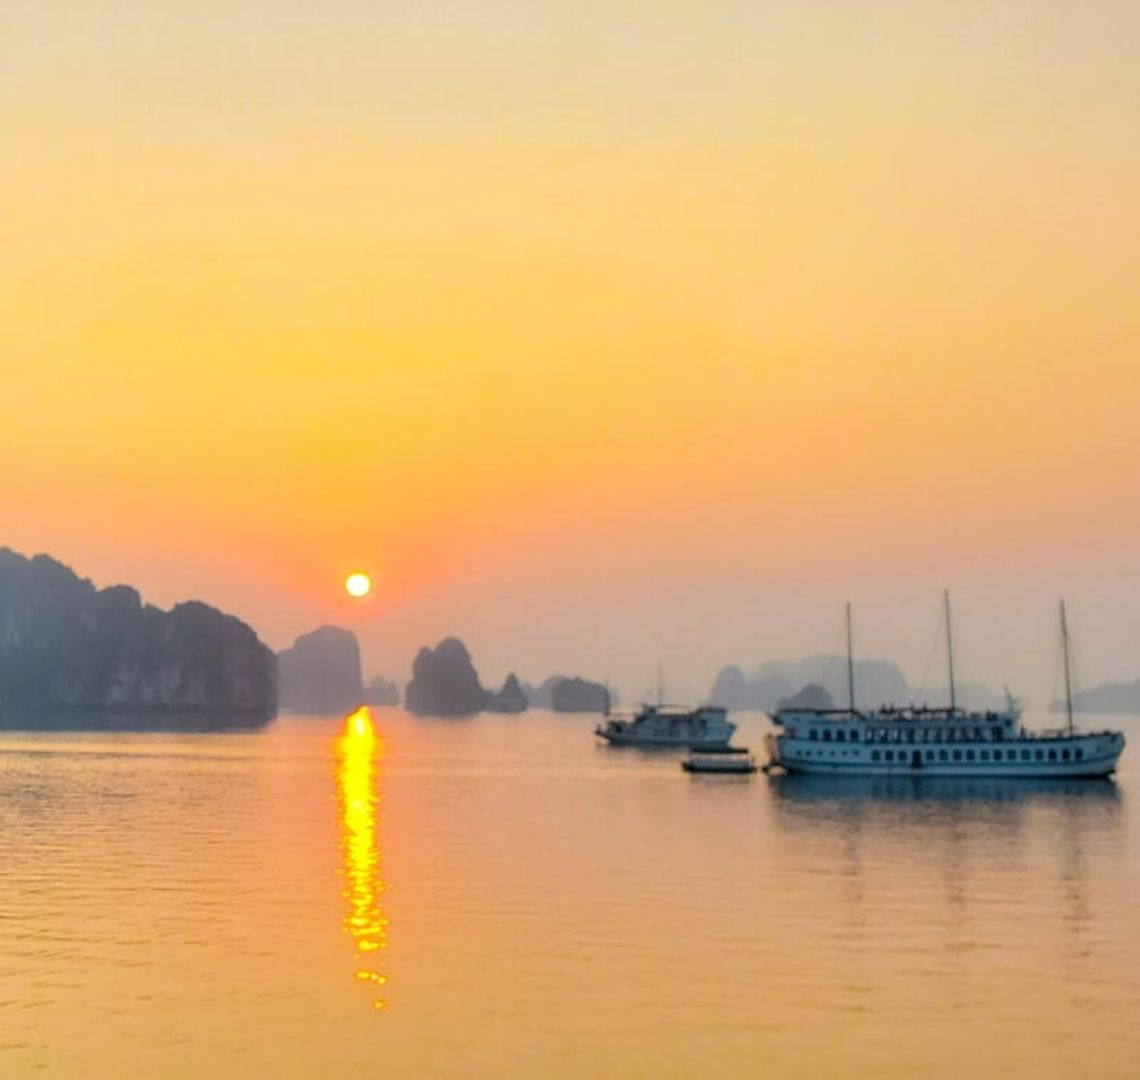 The sun is setting in Bai Tu Long in Halong Bay. There are junk ships on the still water in the foreground and shadowy limestone rocks and islands in the background. The sky is bright orange and the tiny setting sun sets off an orange stripe in its reflection in the water.